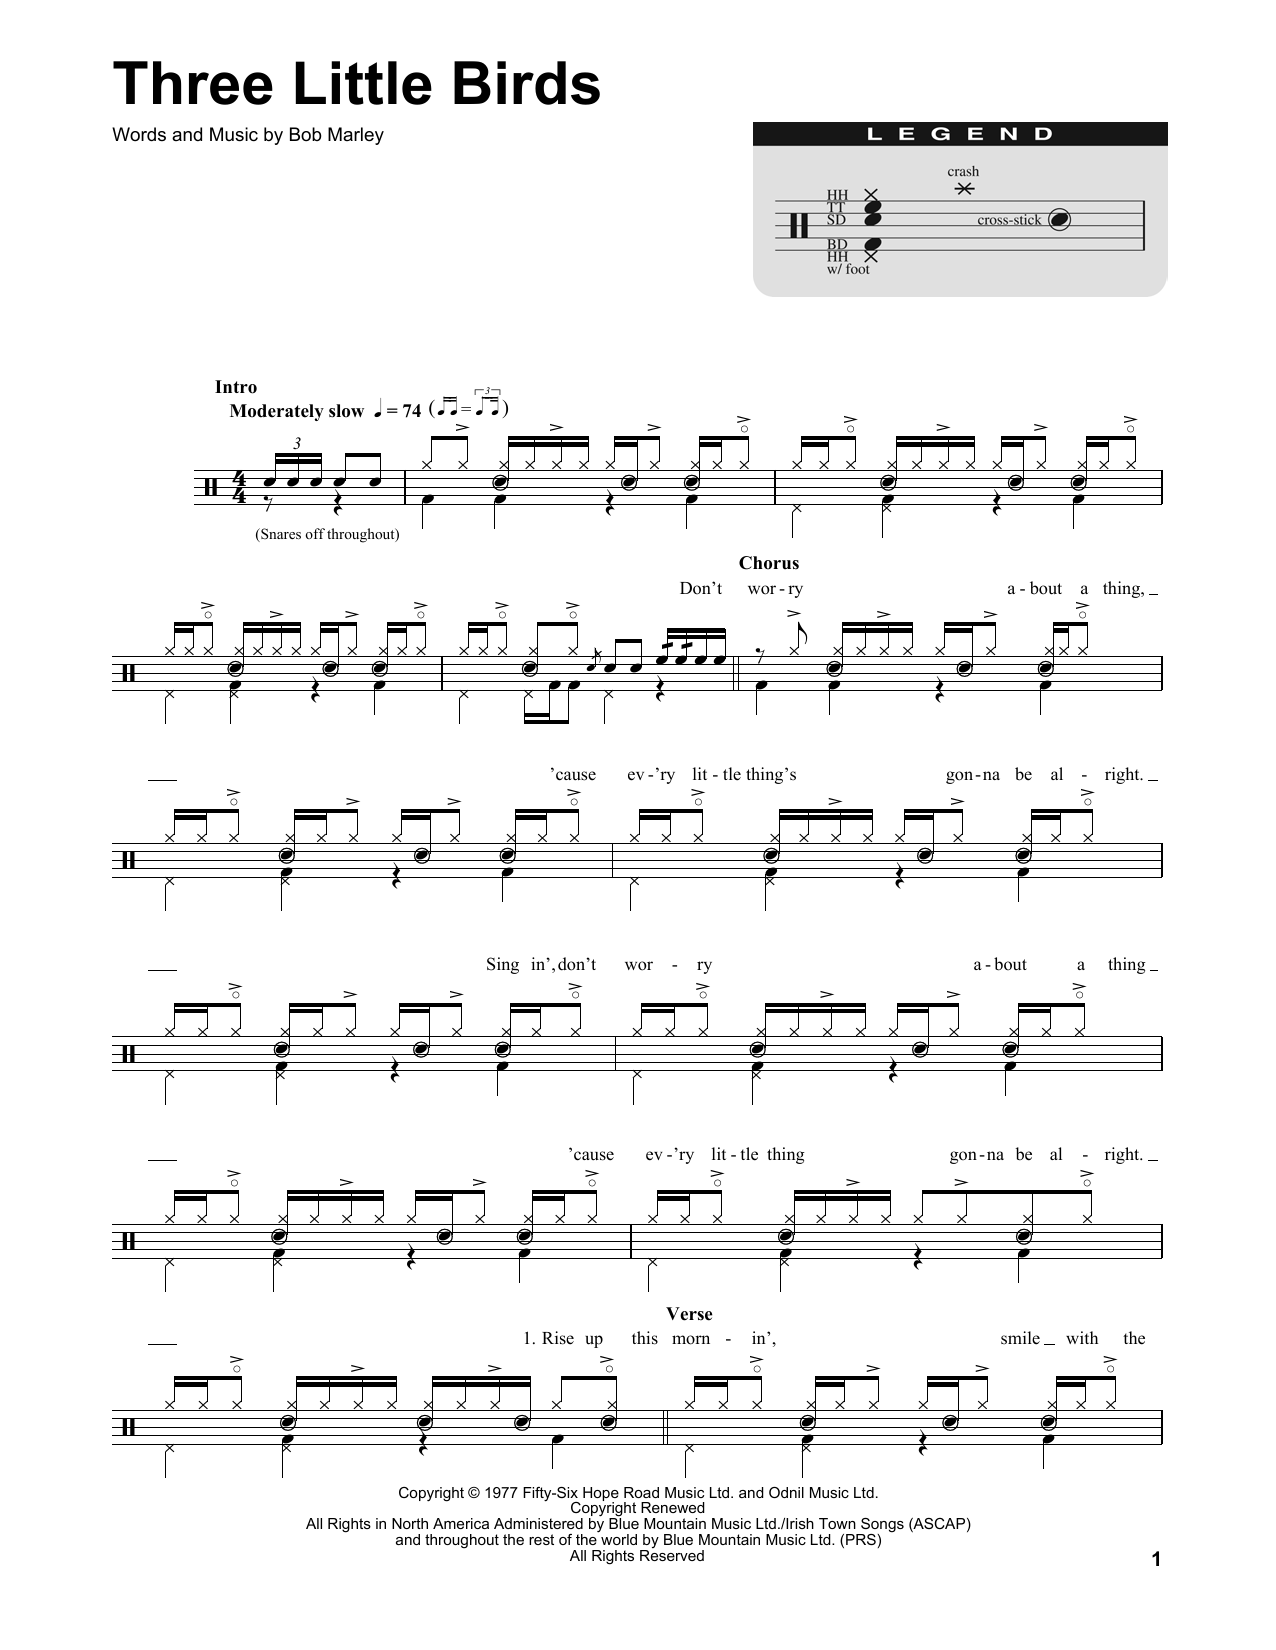 Three little birds sheet music by bob marley drums transcription bob marley three little birds drums transcription hexwebz Gallery